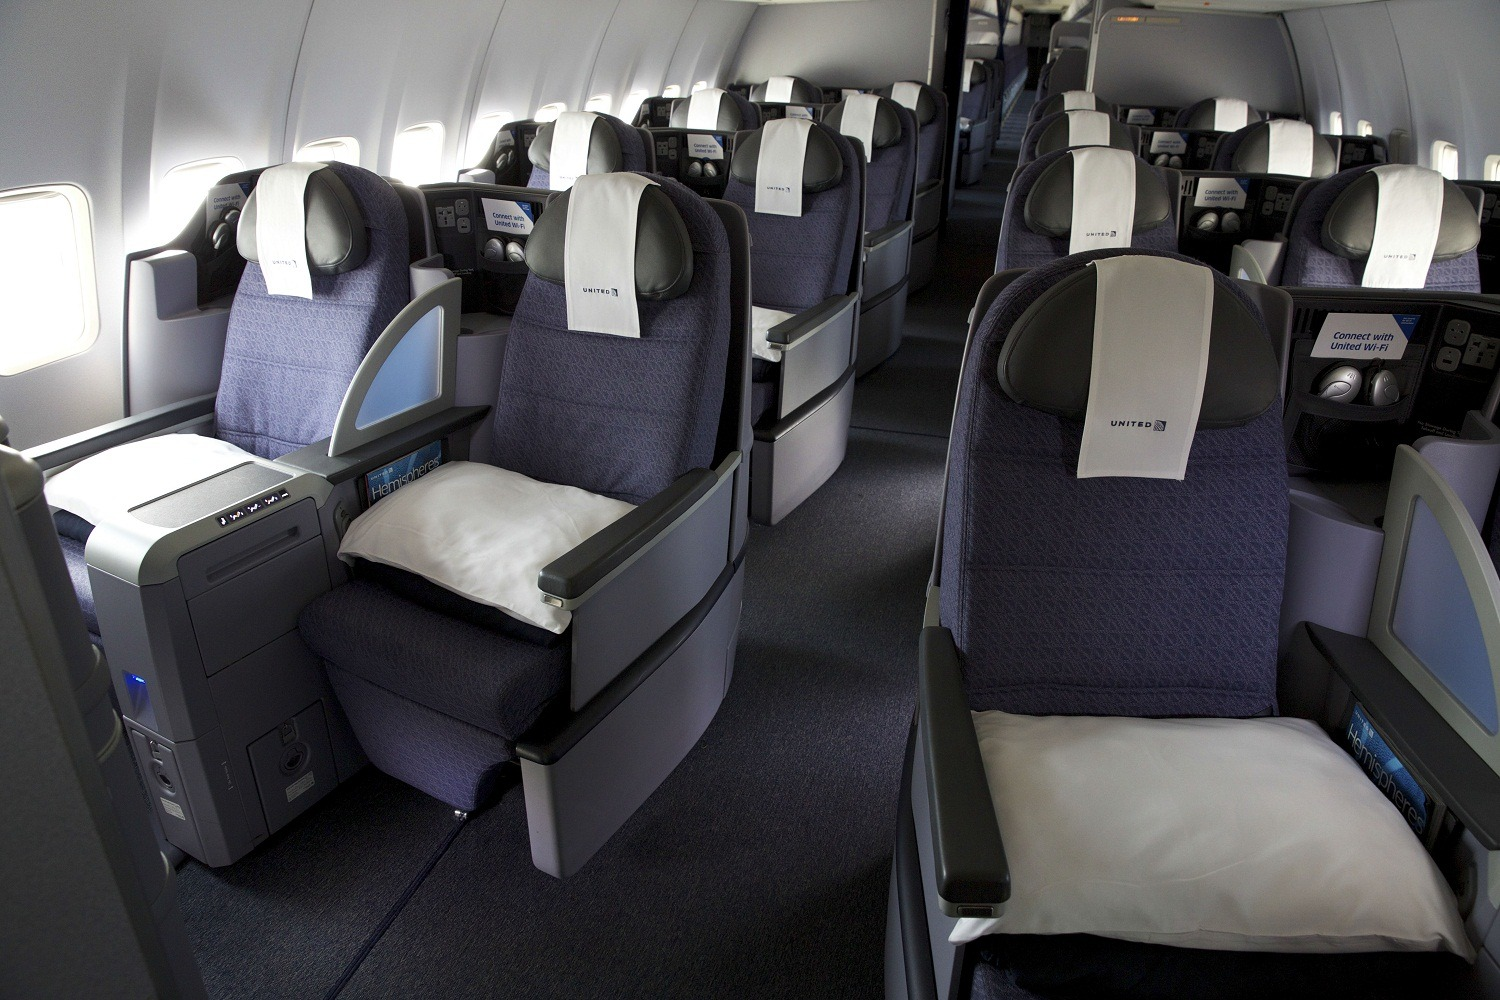 United's BusinessFirst cabin on P.S. aircraft